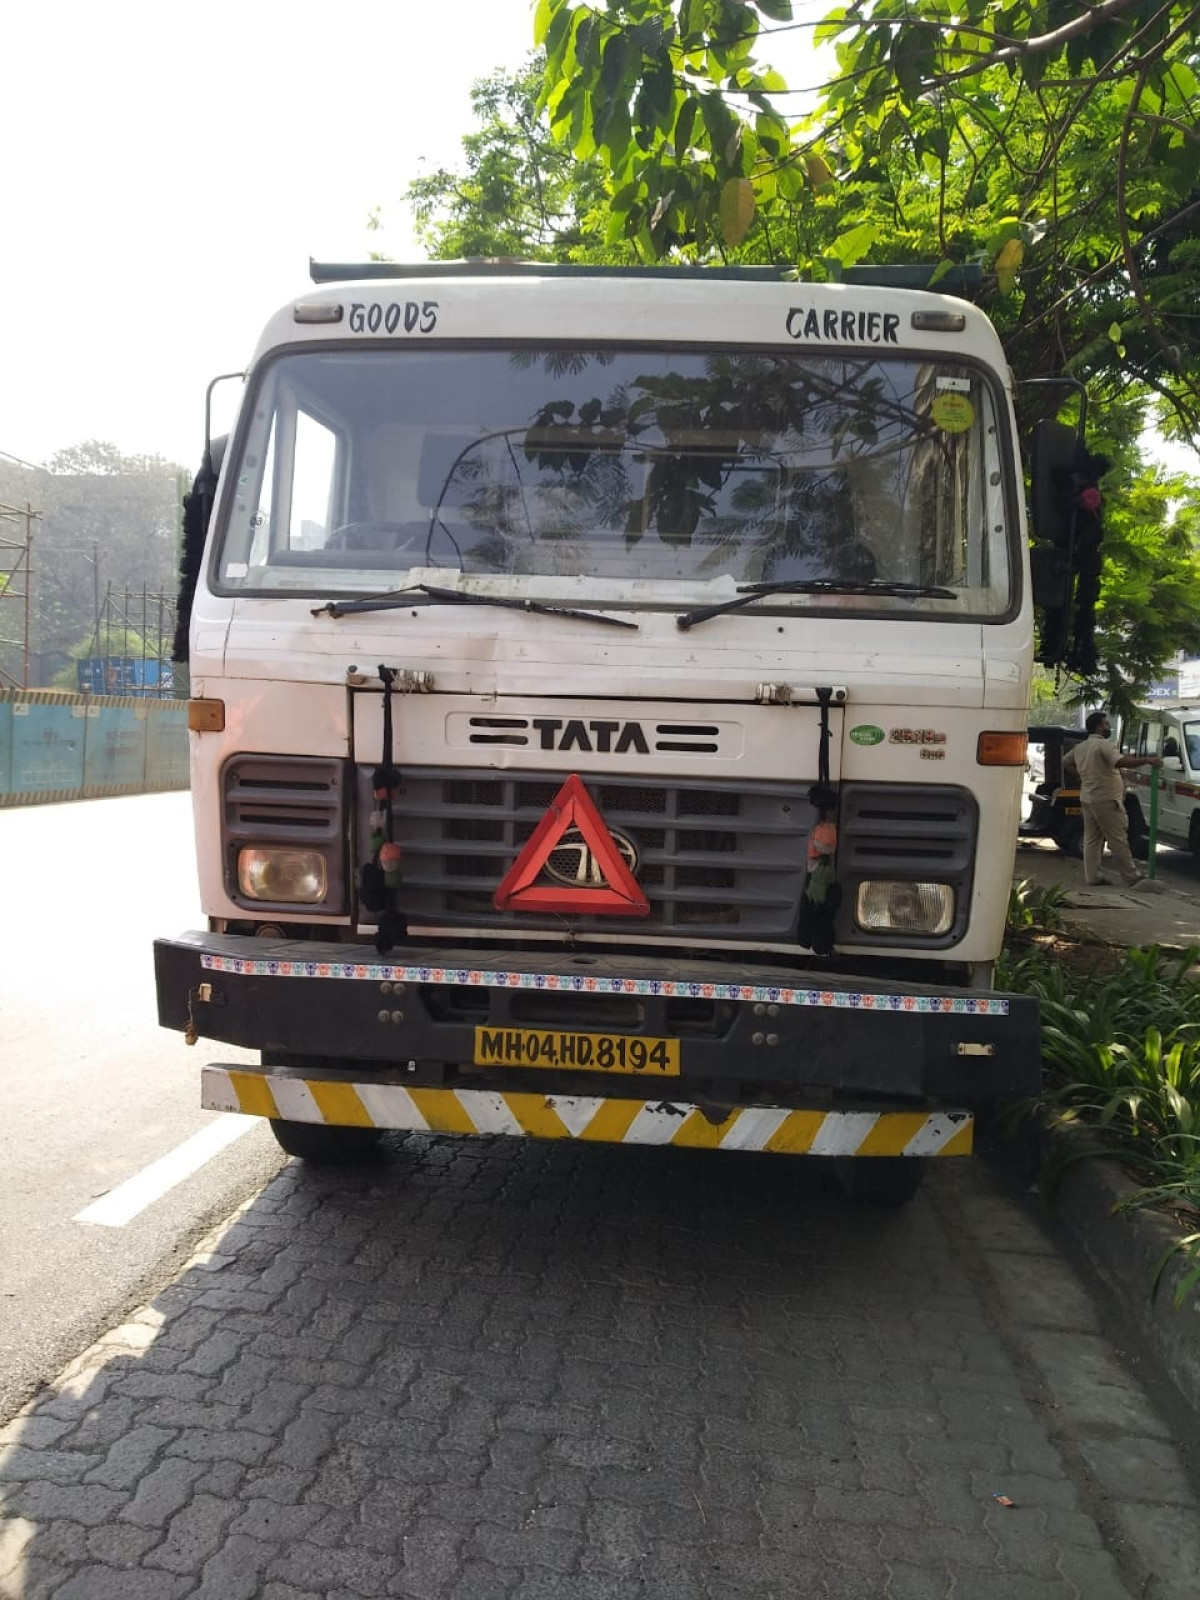 Thane: Two injured after colliding with a speeding dumper